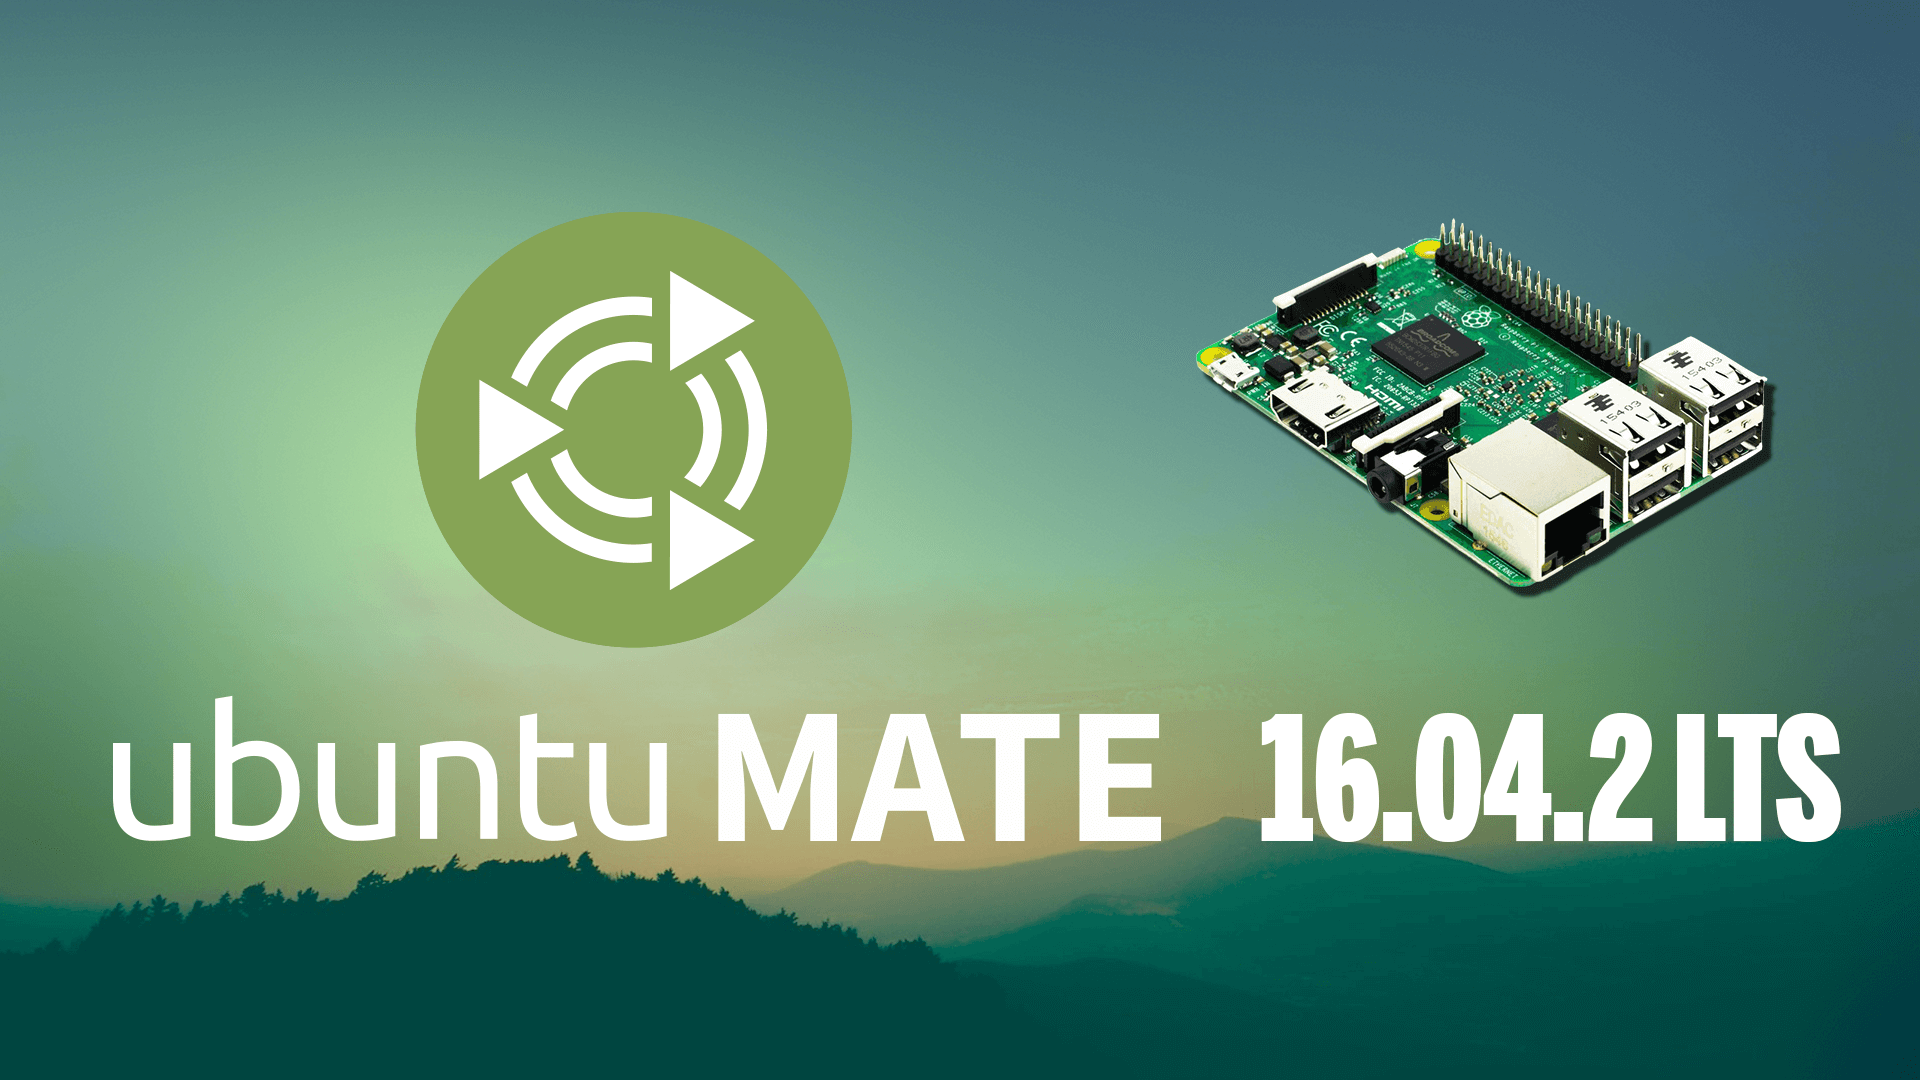 How To Setup and Install Ubuntu Mate 16.04.2 LTS on Raspberry Pi 3 or 2